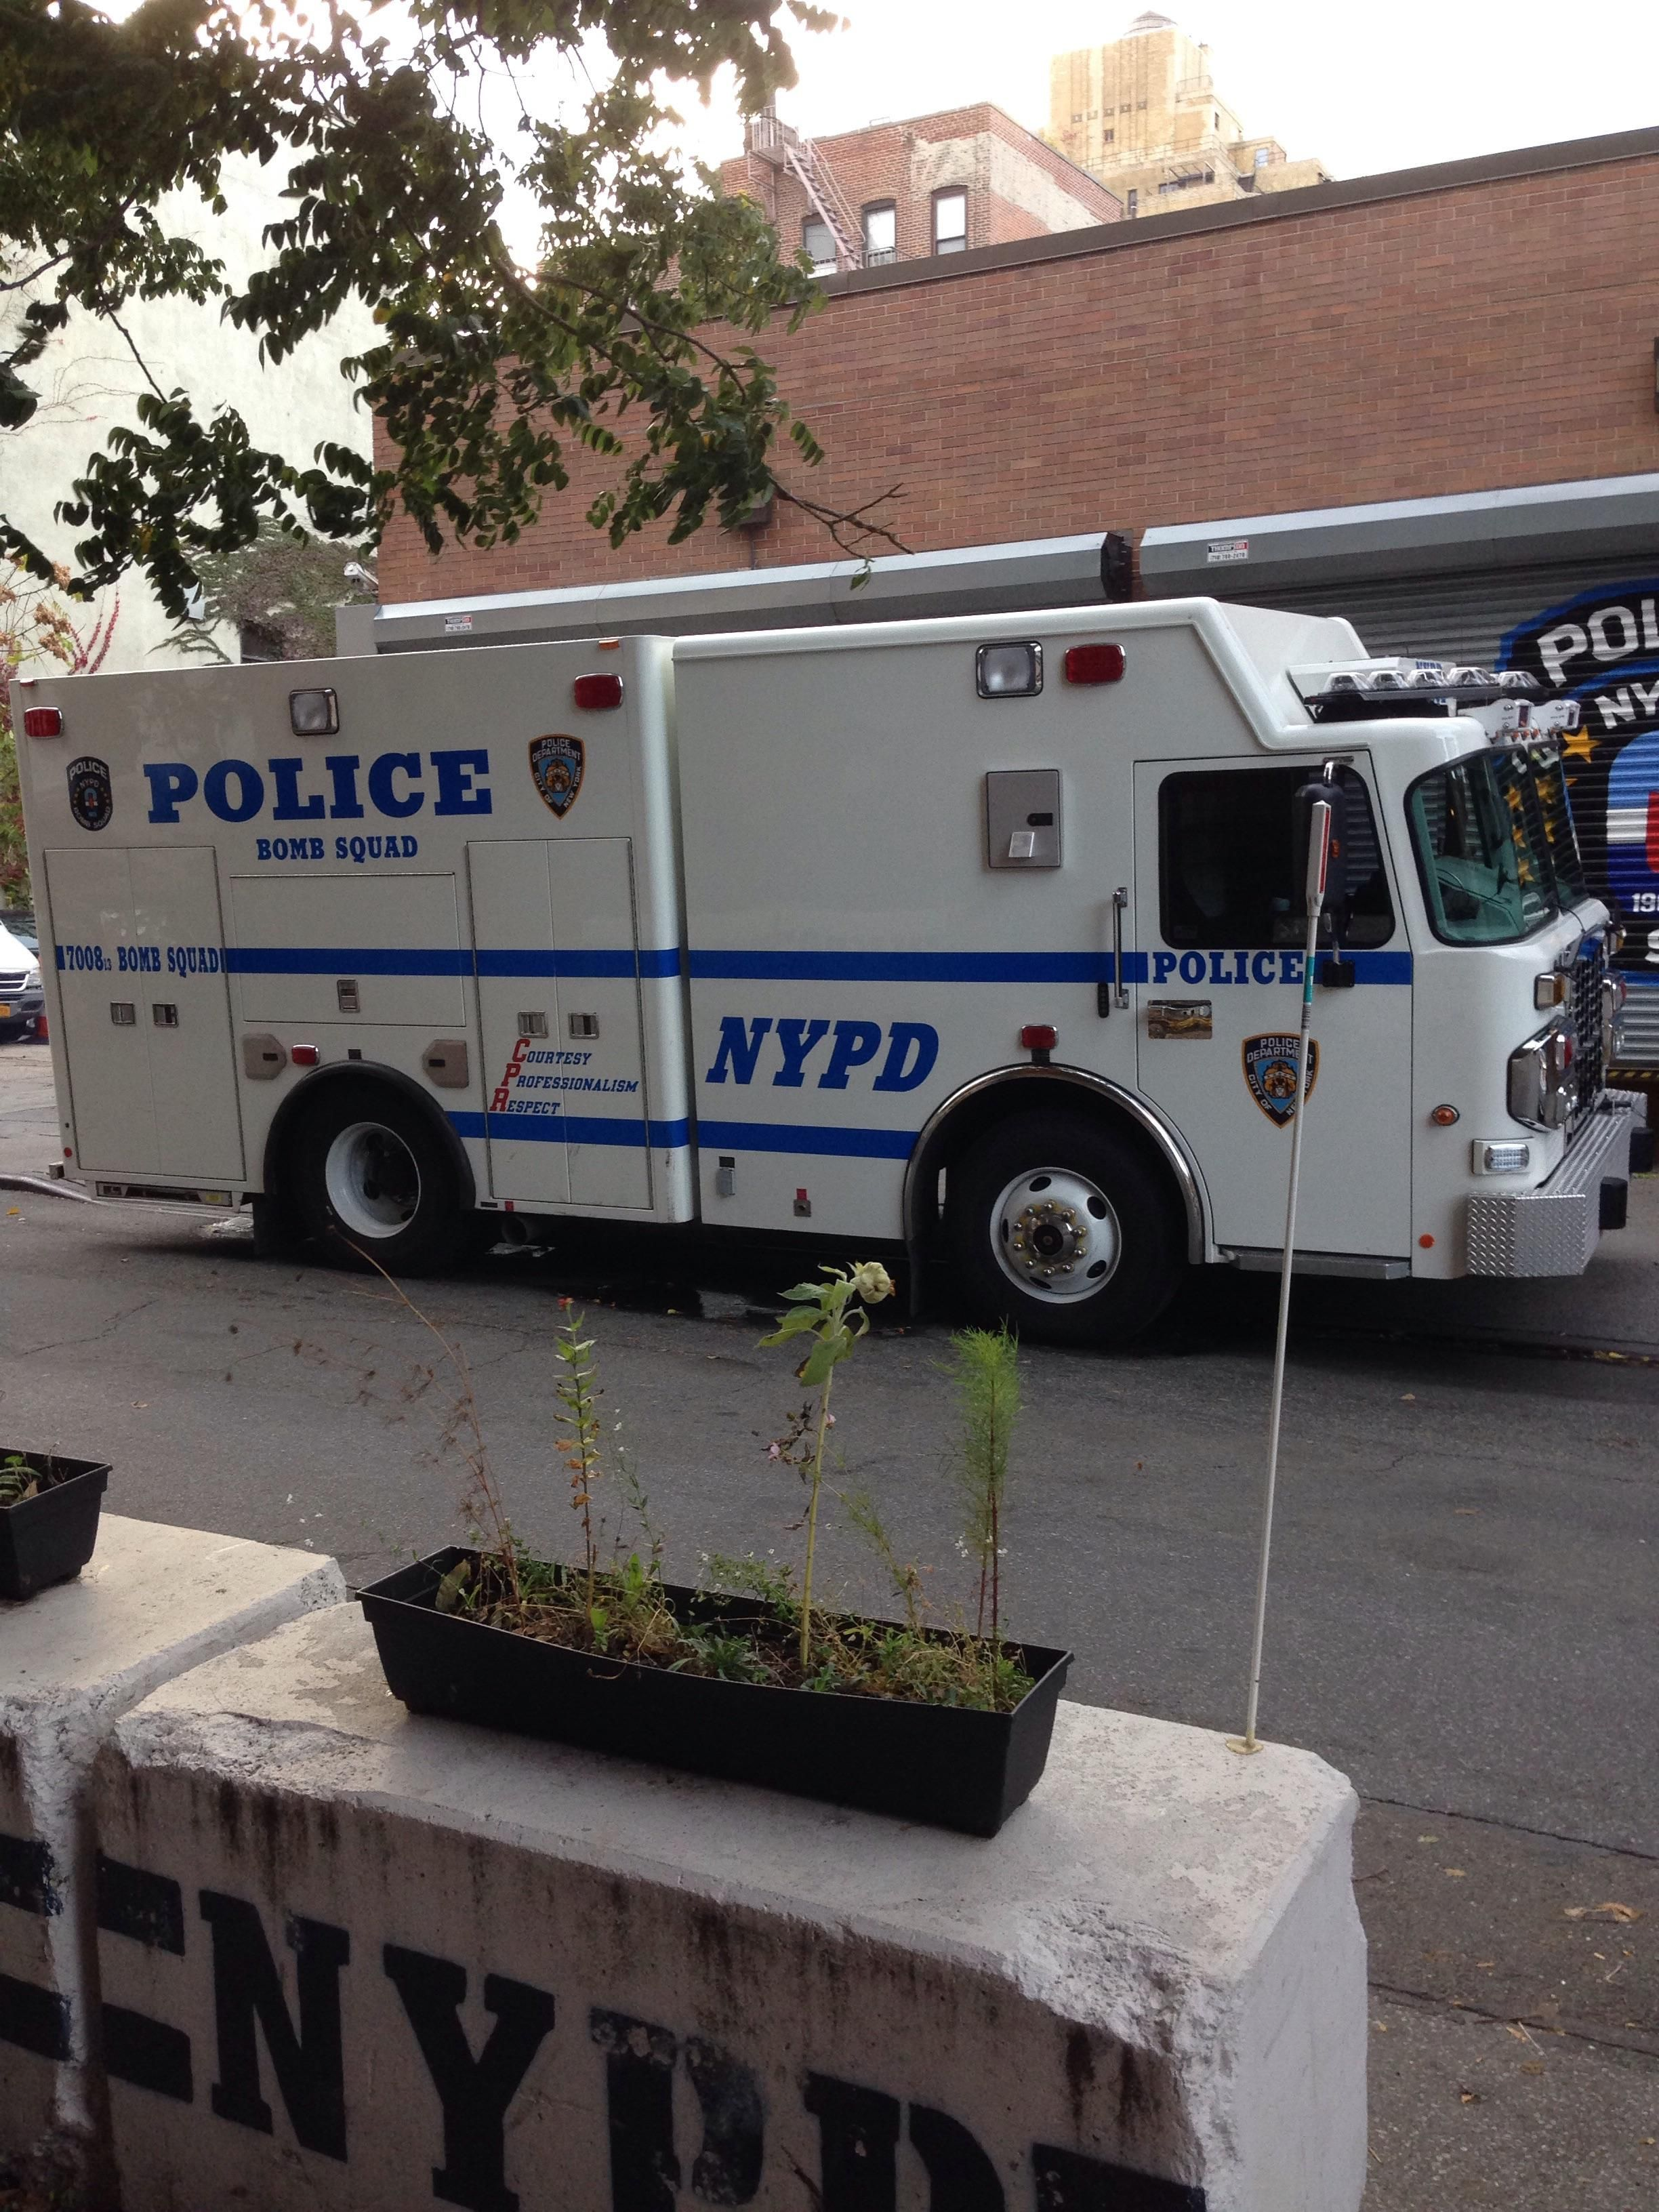 Nypd Bomb Squad Truck Police Truck Us Police Car Police Cars